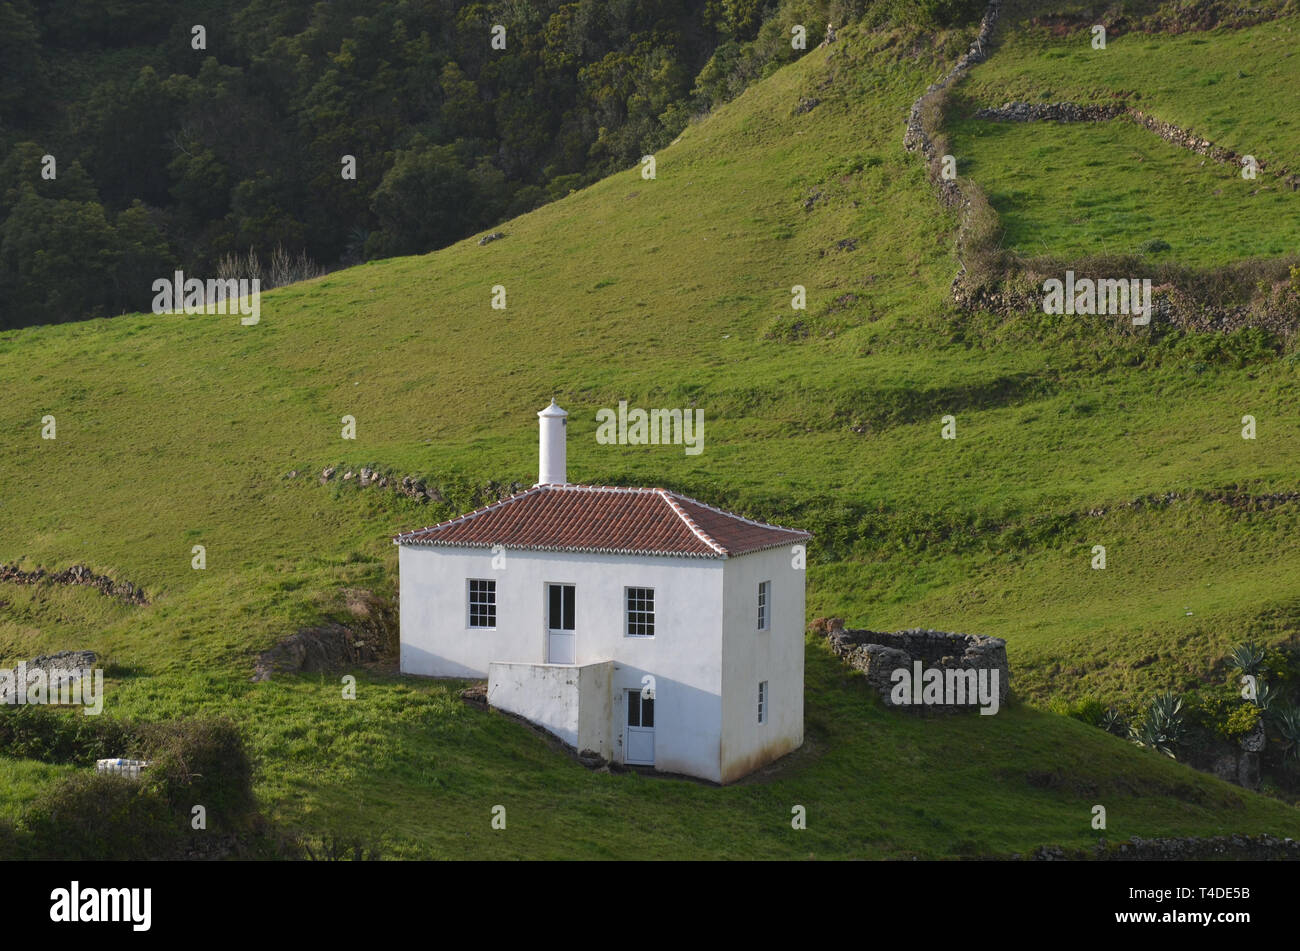 Traditional houses in Malbusca, Santa Maria island, Azores. This parish is now threatened by a project to install a satellite-launching base. - Stock Image